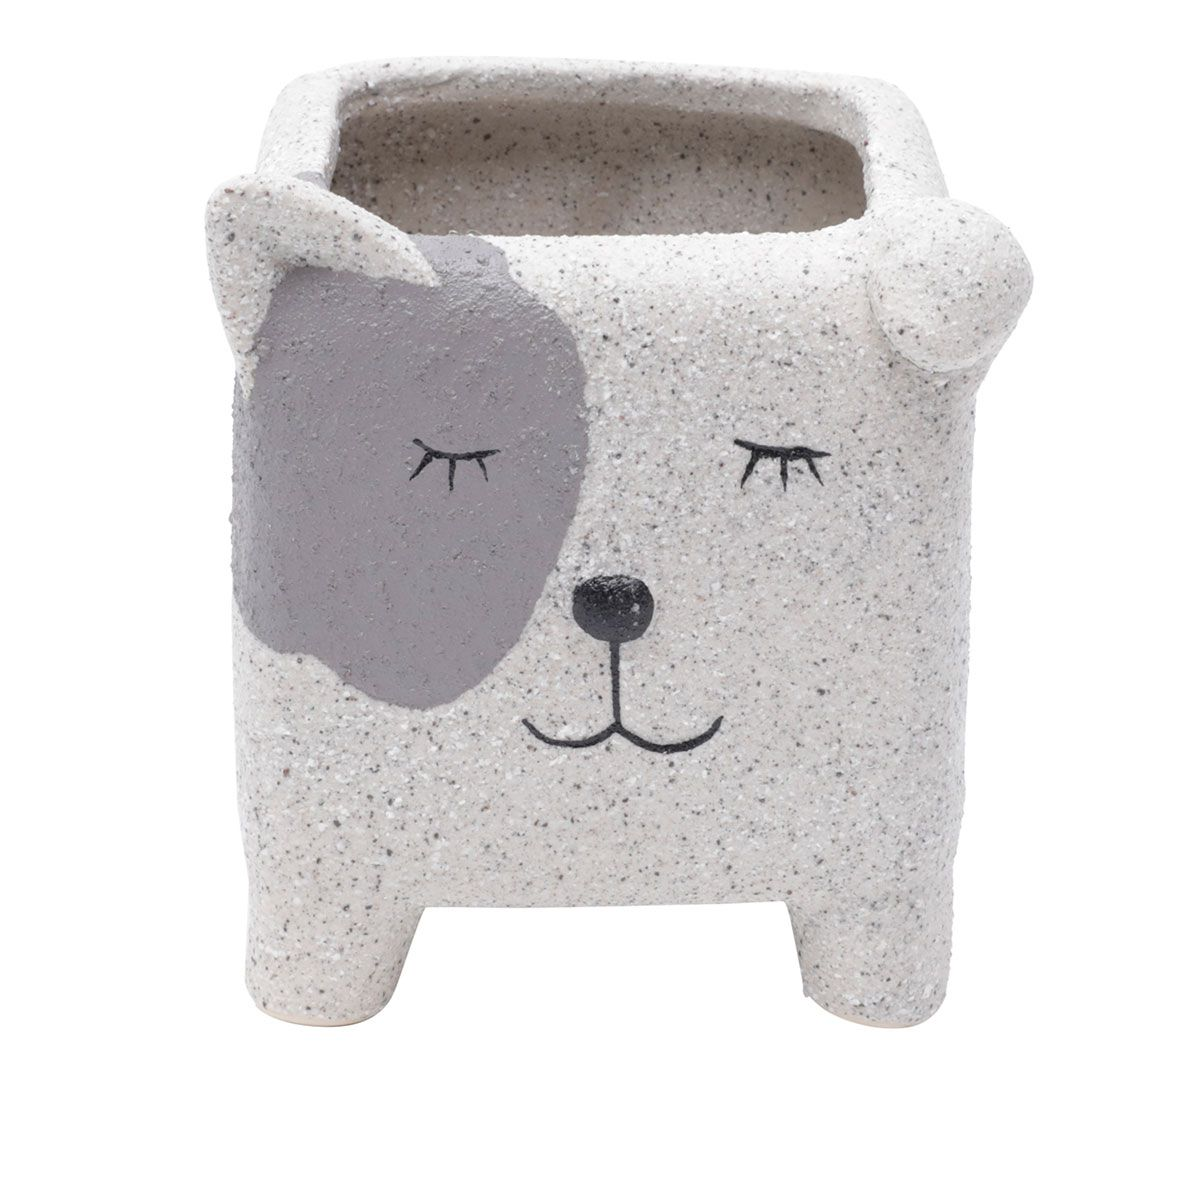 Cachepot Concreto Vaso Decorativo Sleeping Dog